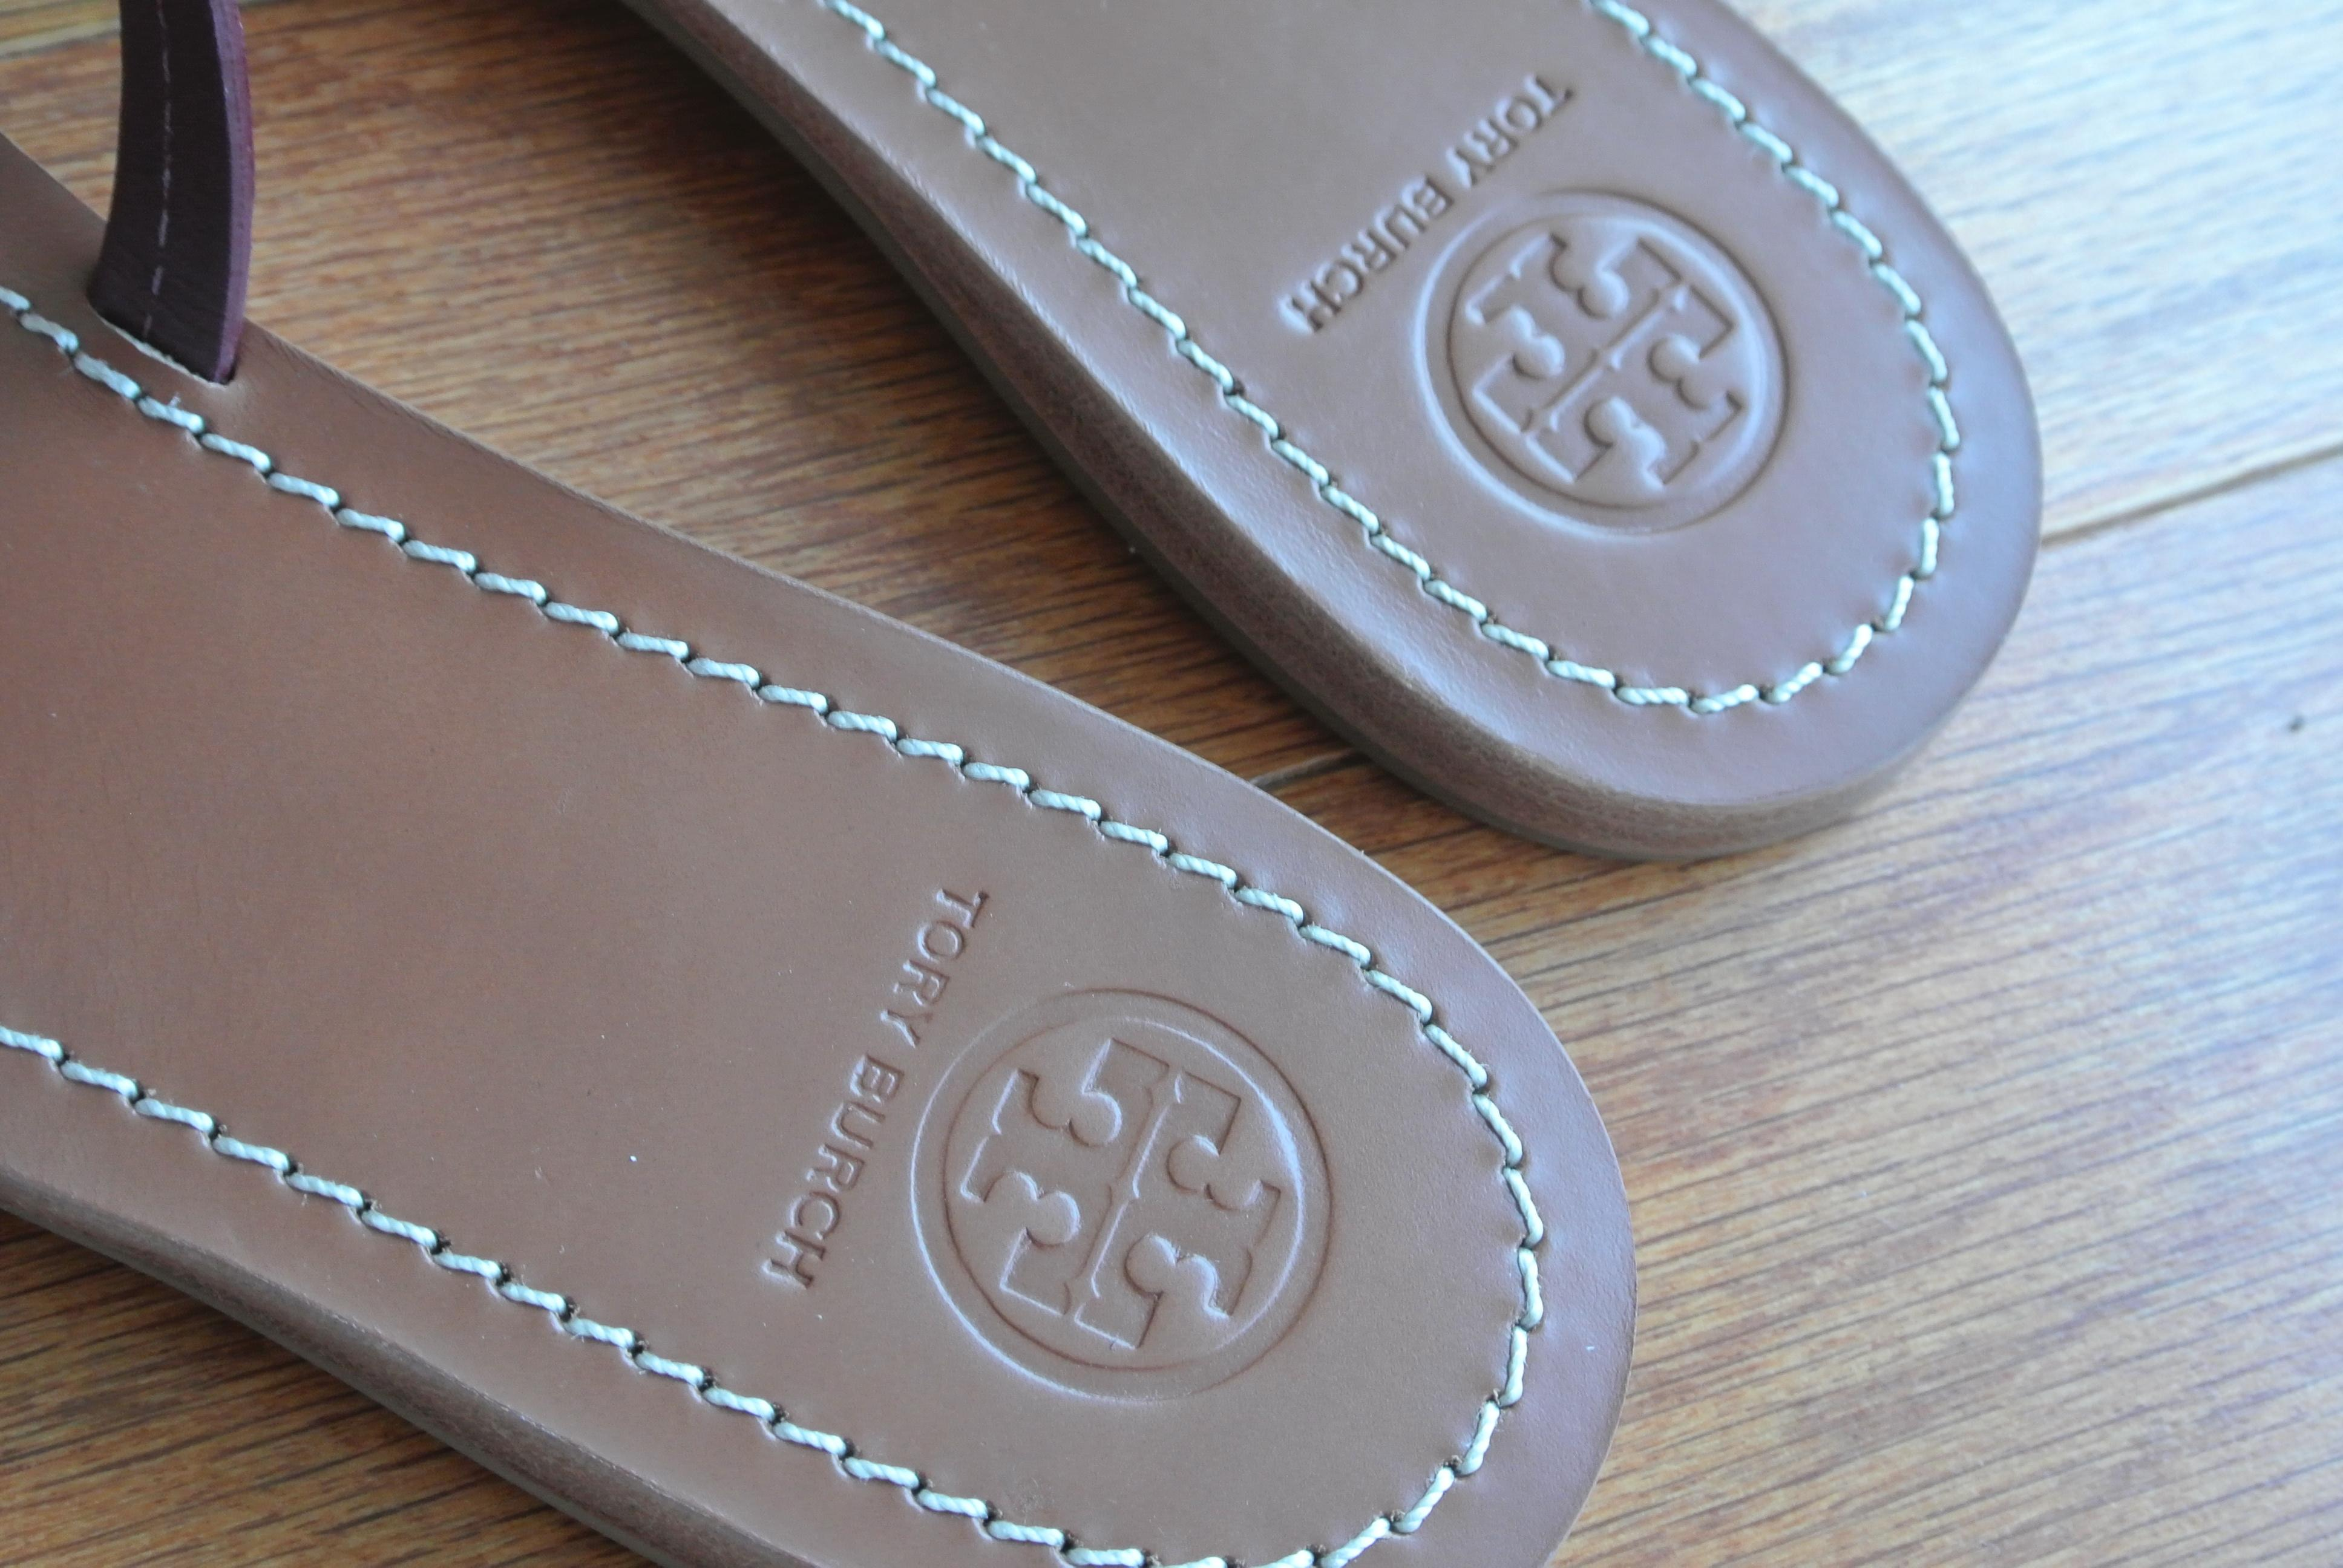 37ee74cf8770 ... Tory Burch Red End-of-summer-sale Mini Miller Sandals Size US US ...